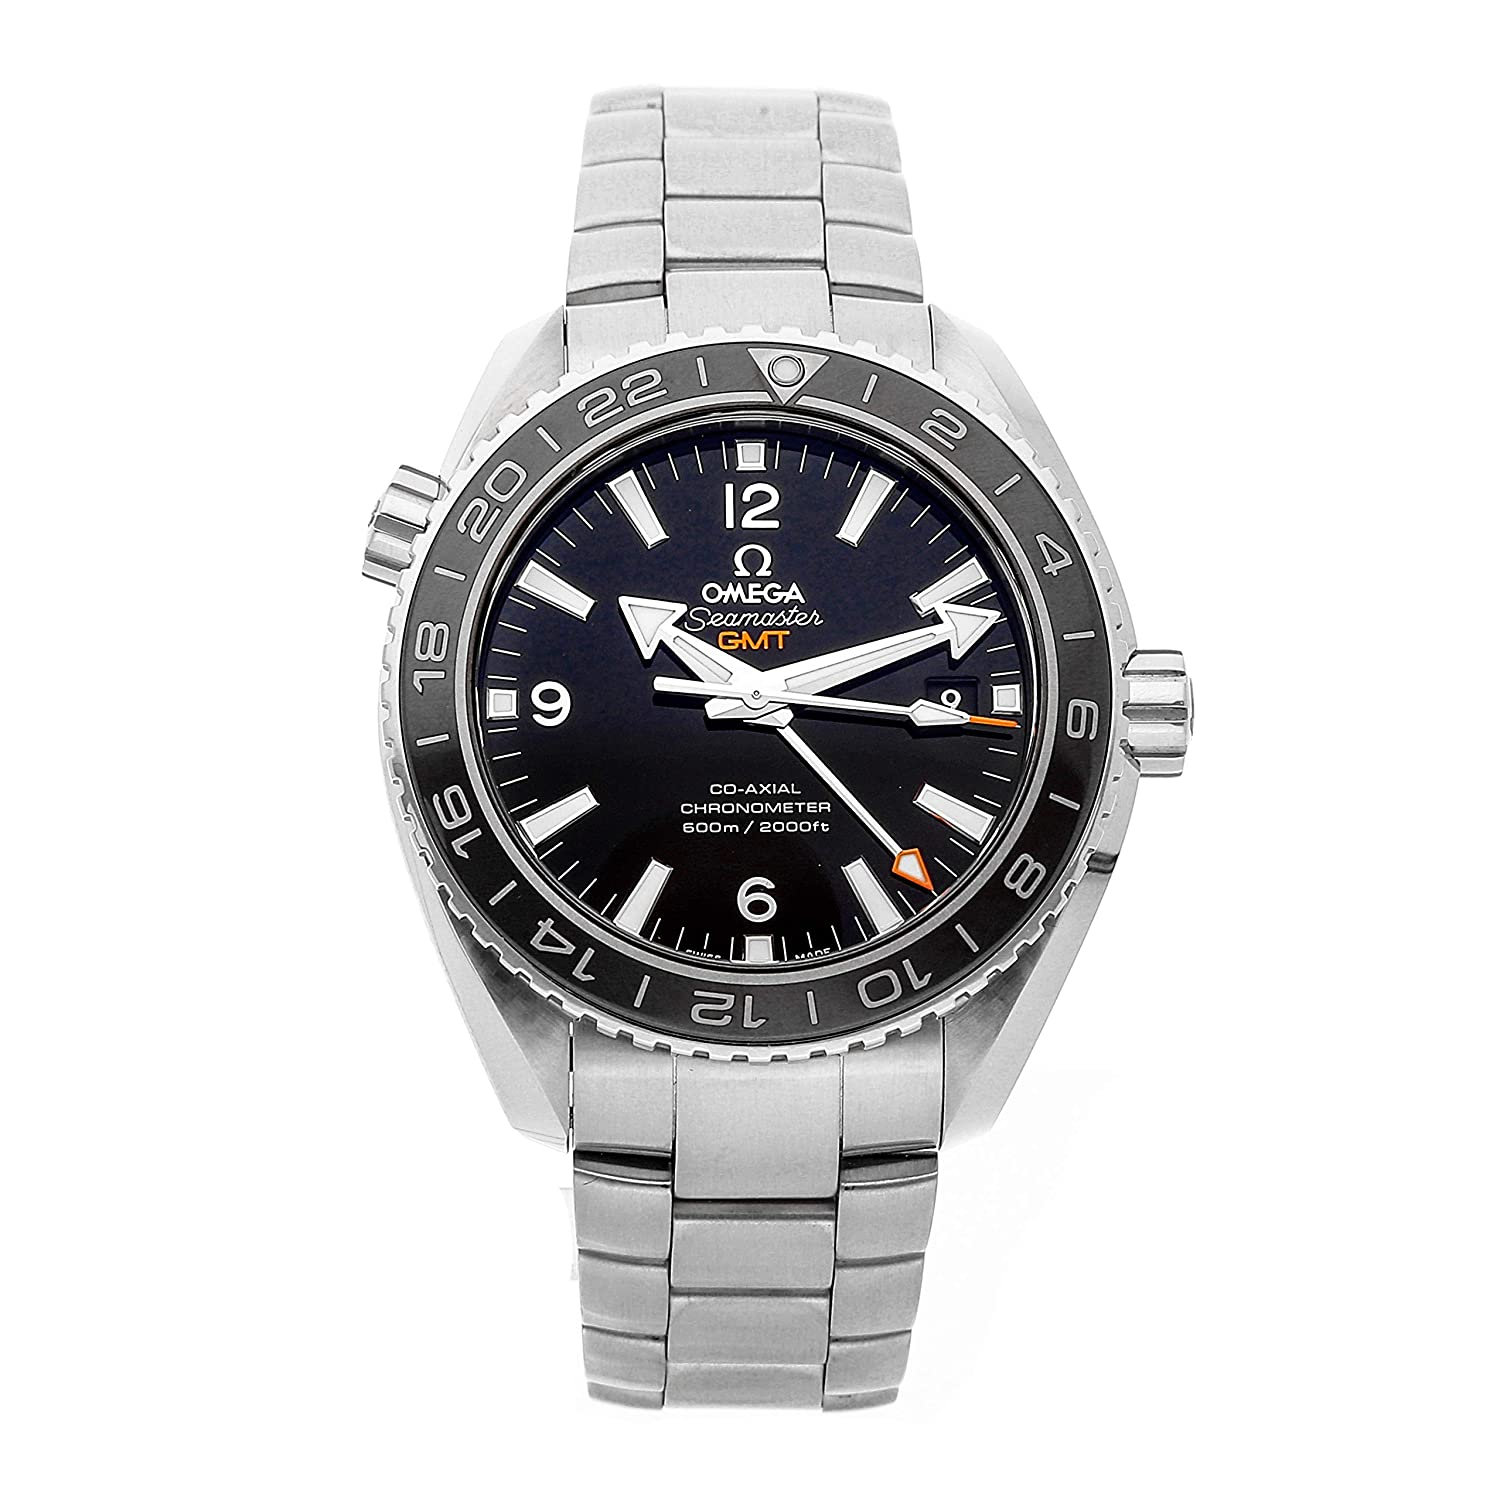 Omega Seamaster Planet Ocean 600m Co-axial GMT 43,5mm 232.30.44.22.01.001